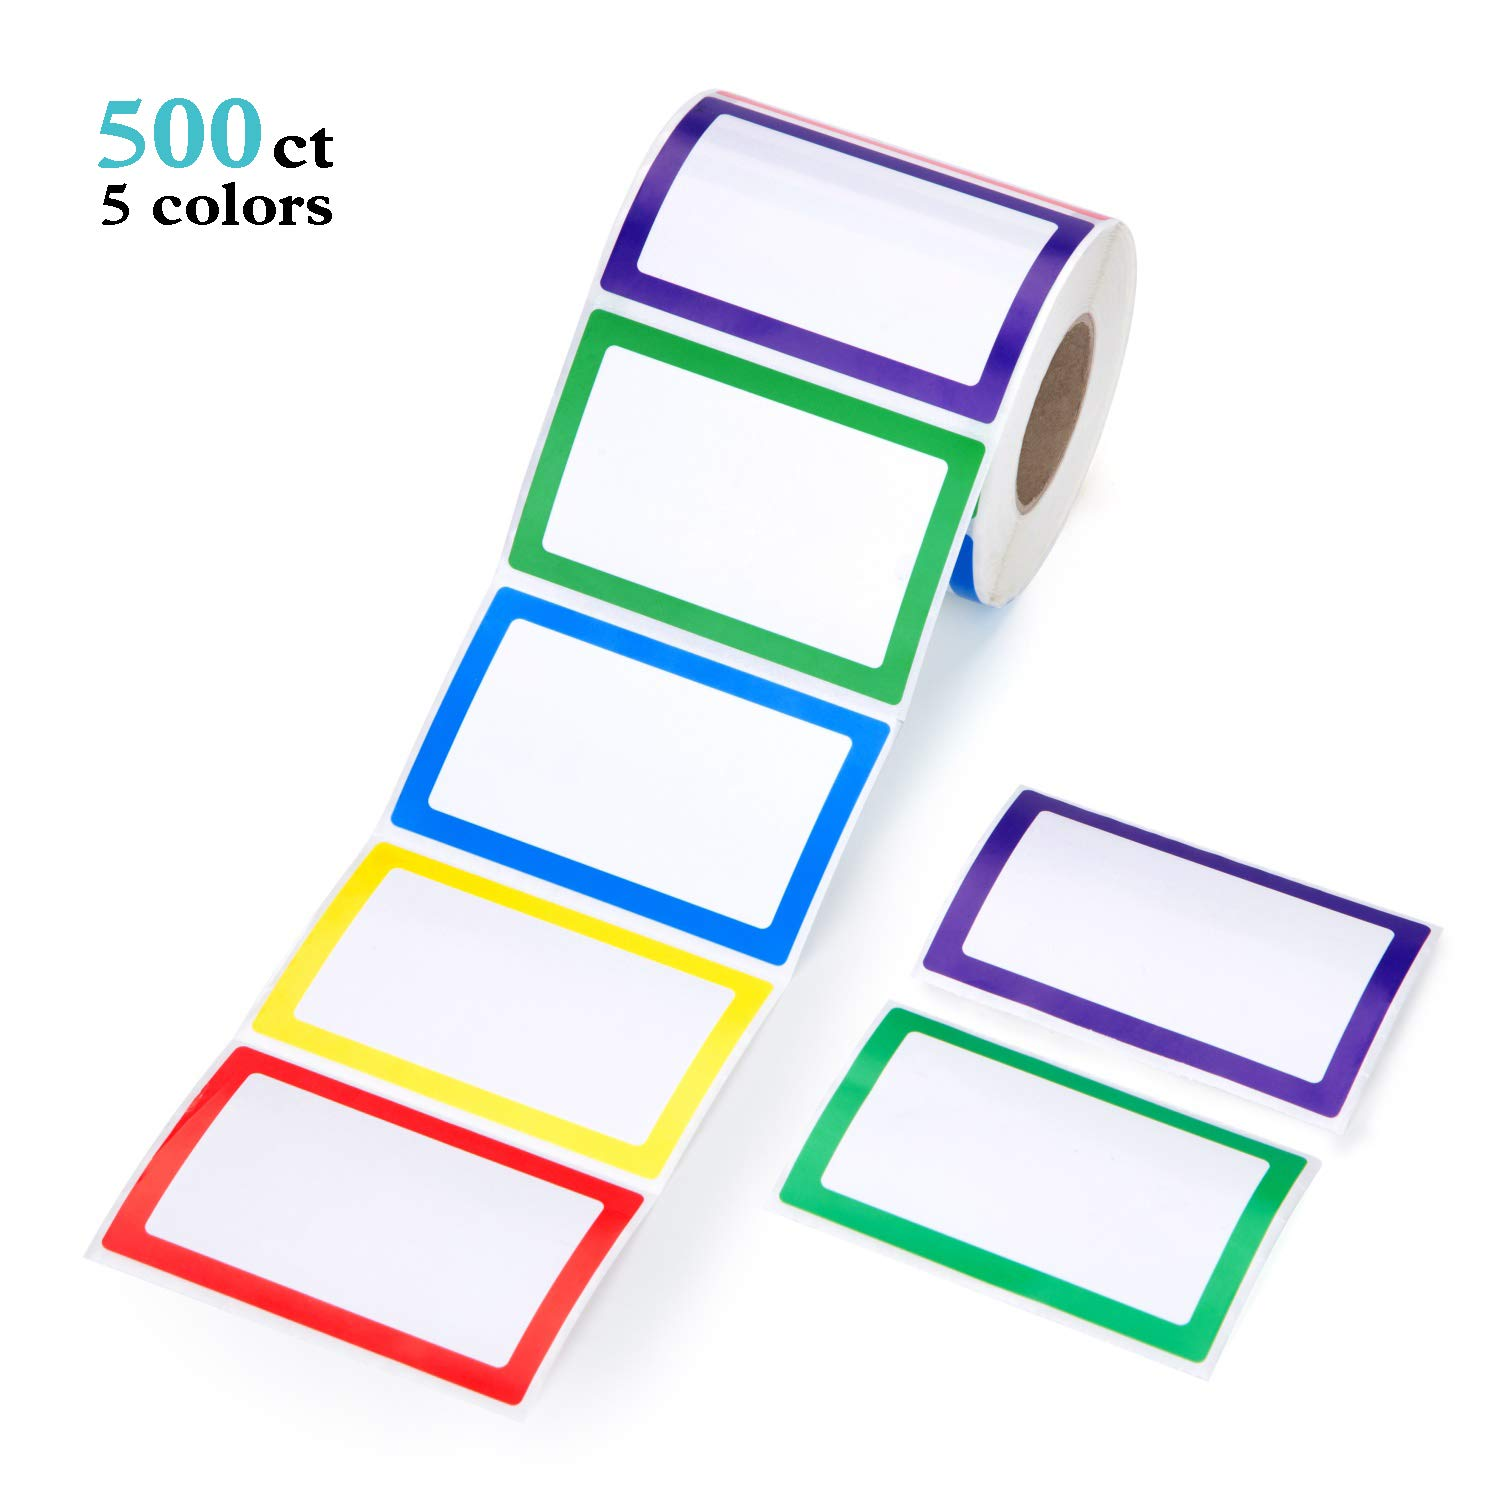 """Gift Wrap Envelope Sealing Craft DIY Project Decoration Jar Canning Mionno 1.5/"""" Kraft Paper Stickers 1000pcs//Roll Handmade with Love Adhesive Labels for Handmade Baking Cakes Pack"""